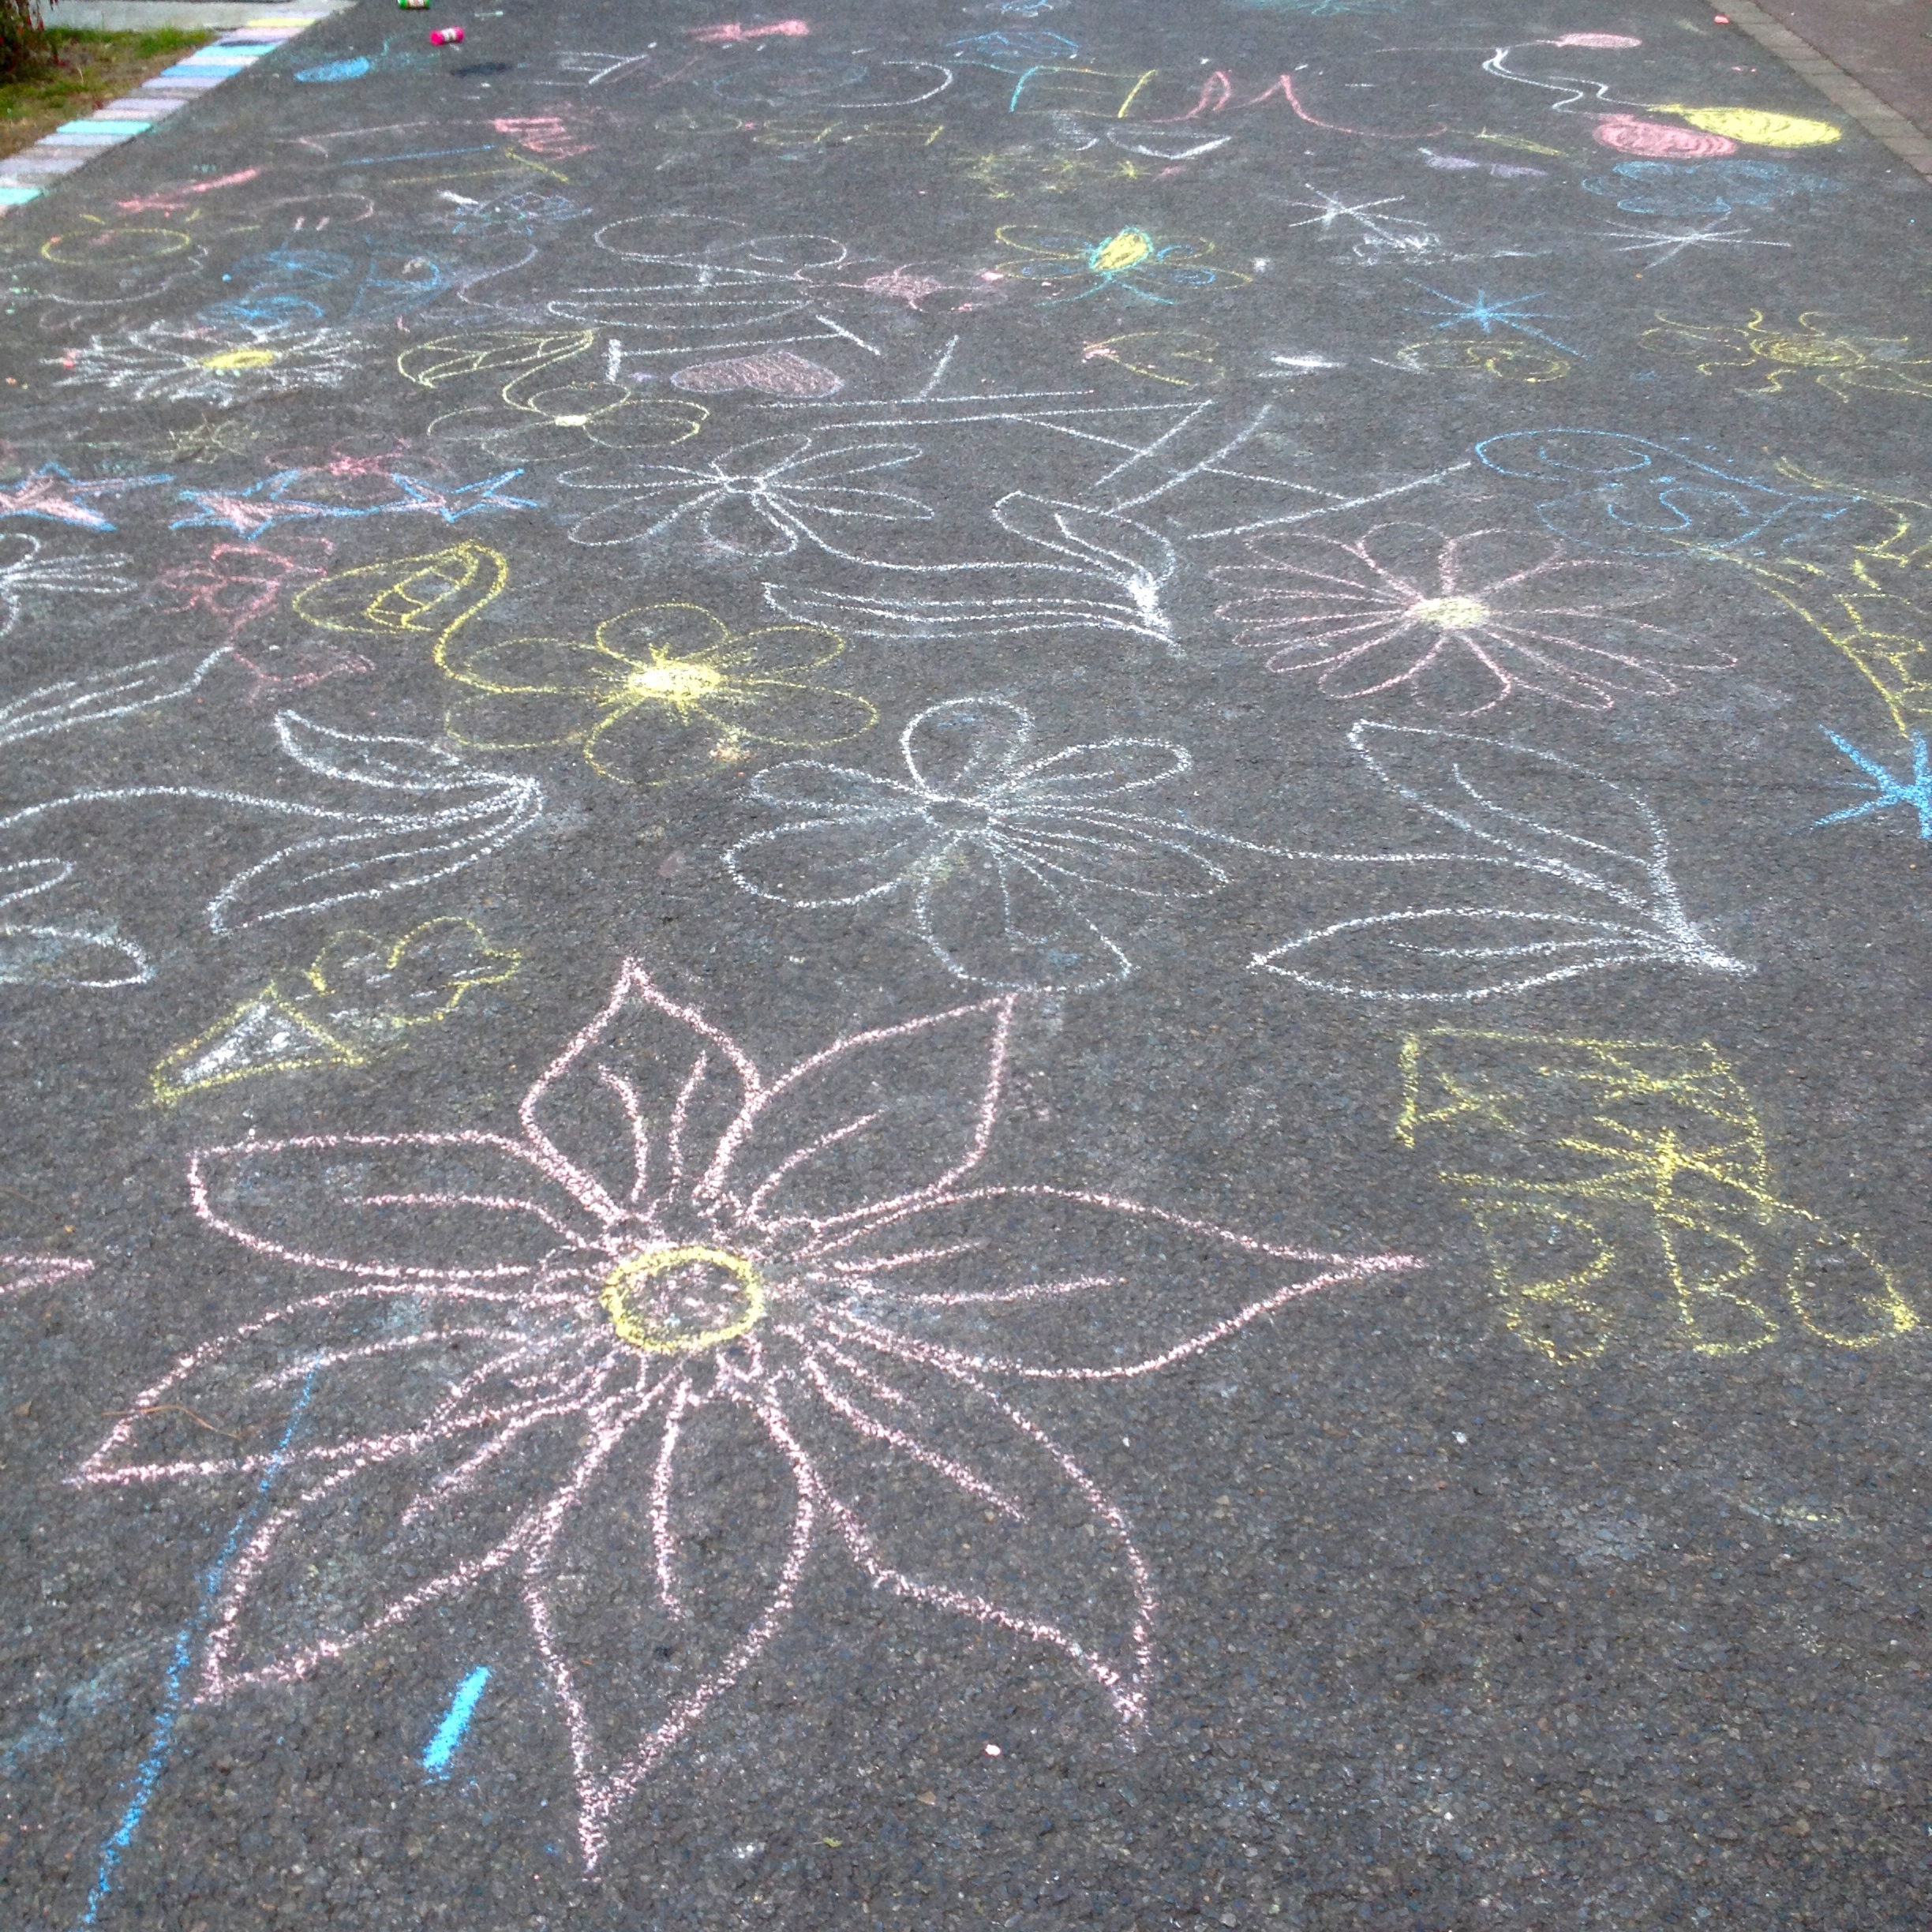 lots of chalking at the BBQ, involving many local kids